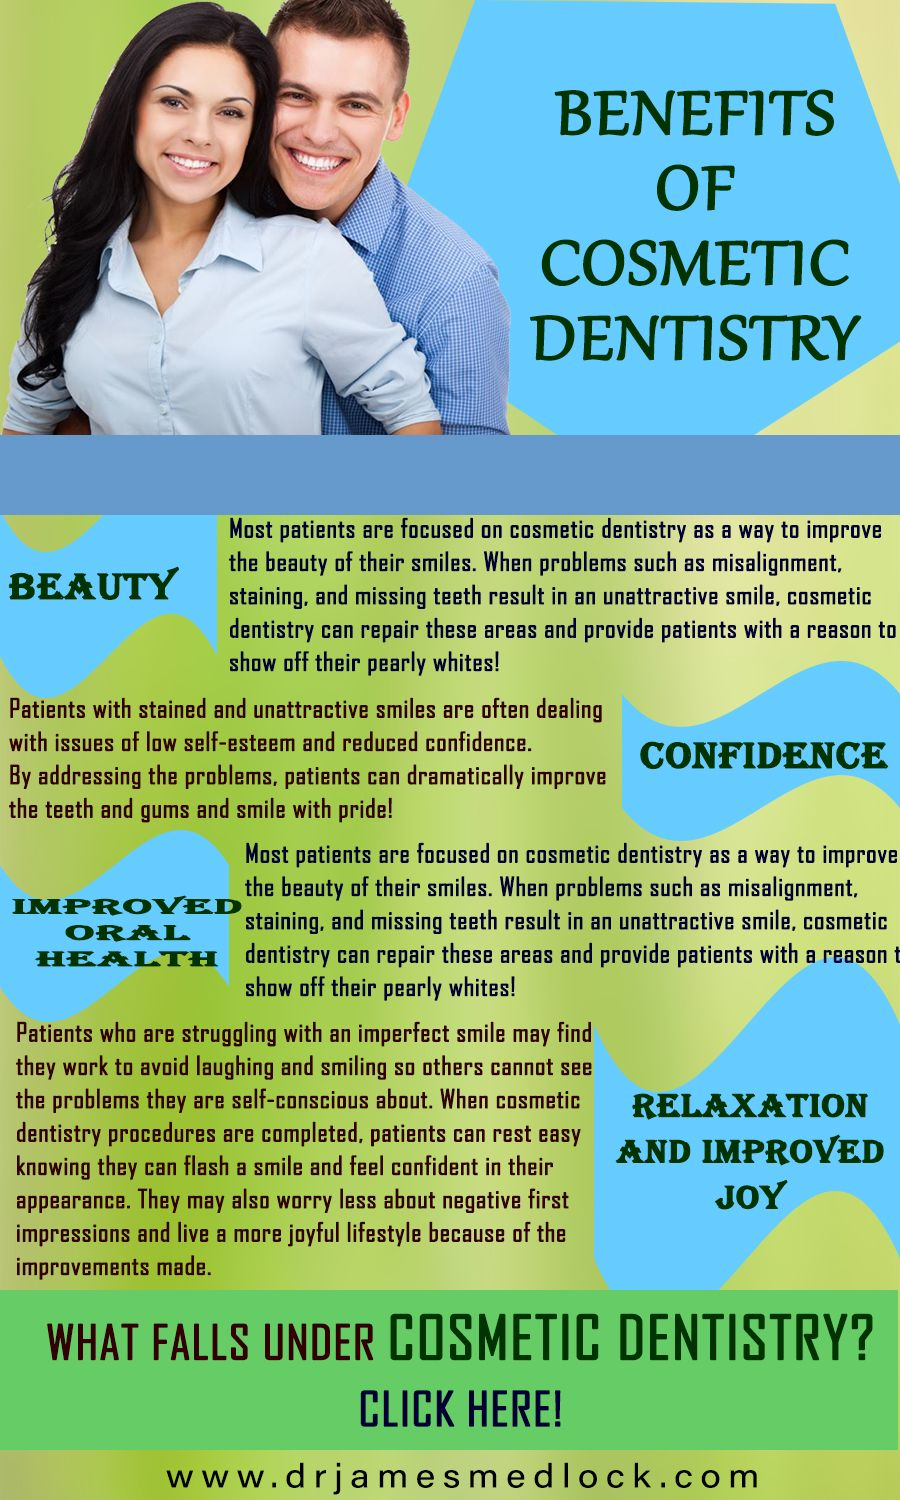 At the practice of Dr. James W. Medlock, DDS, we provide a wide ...